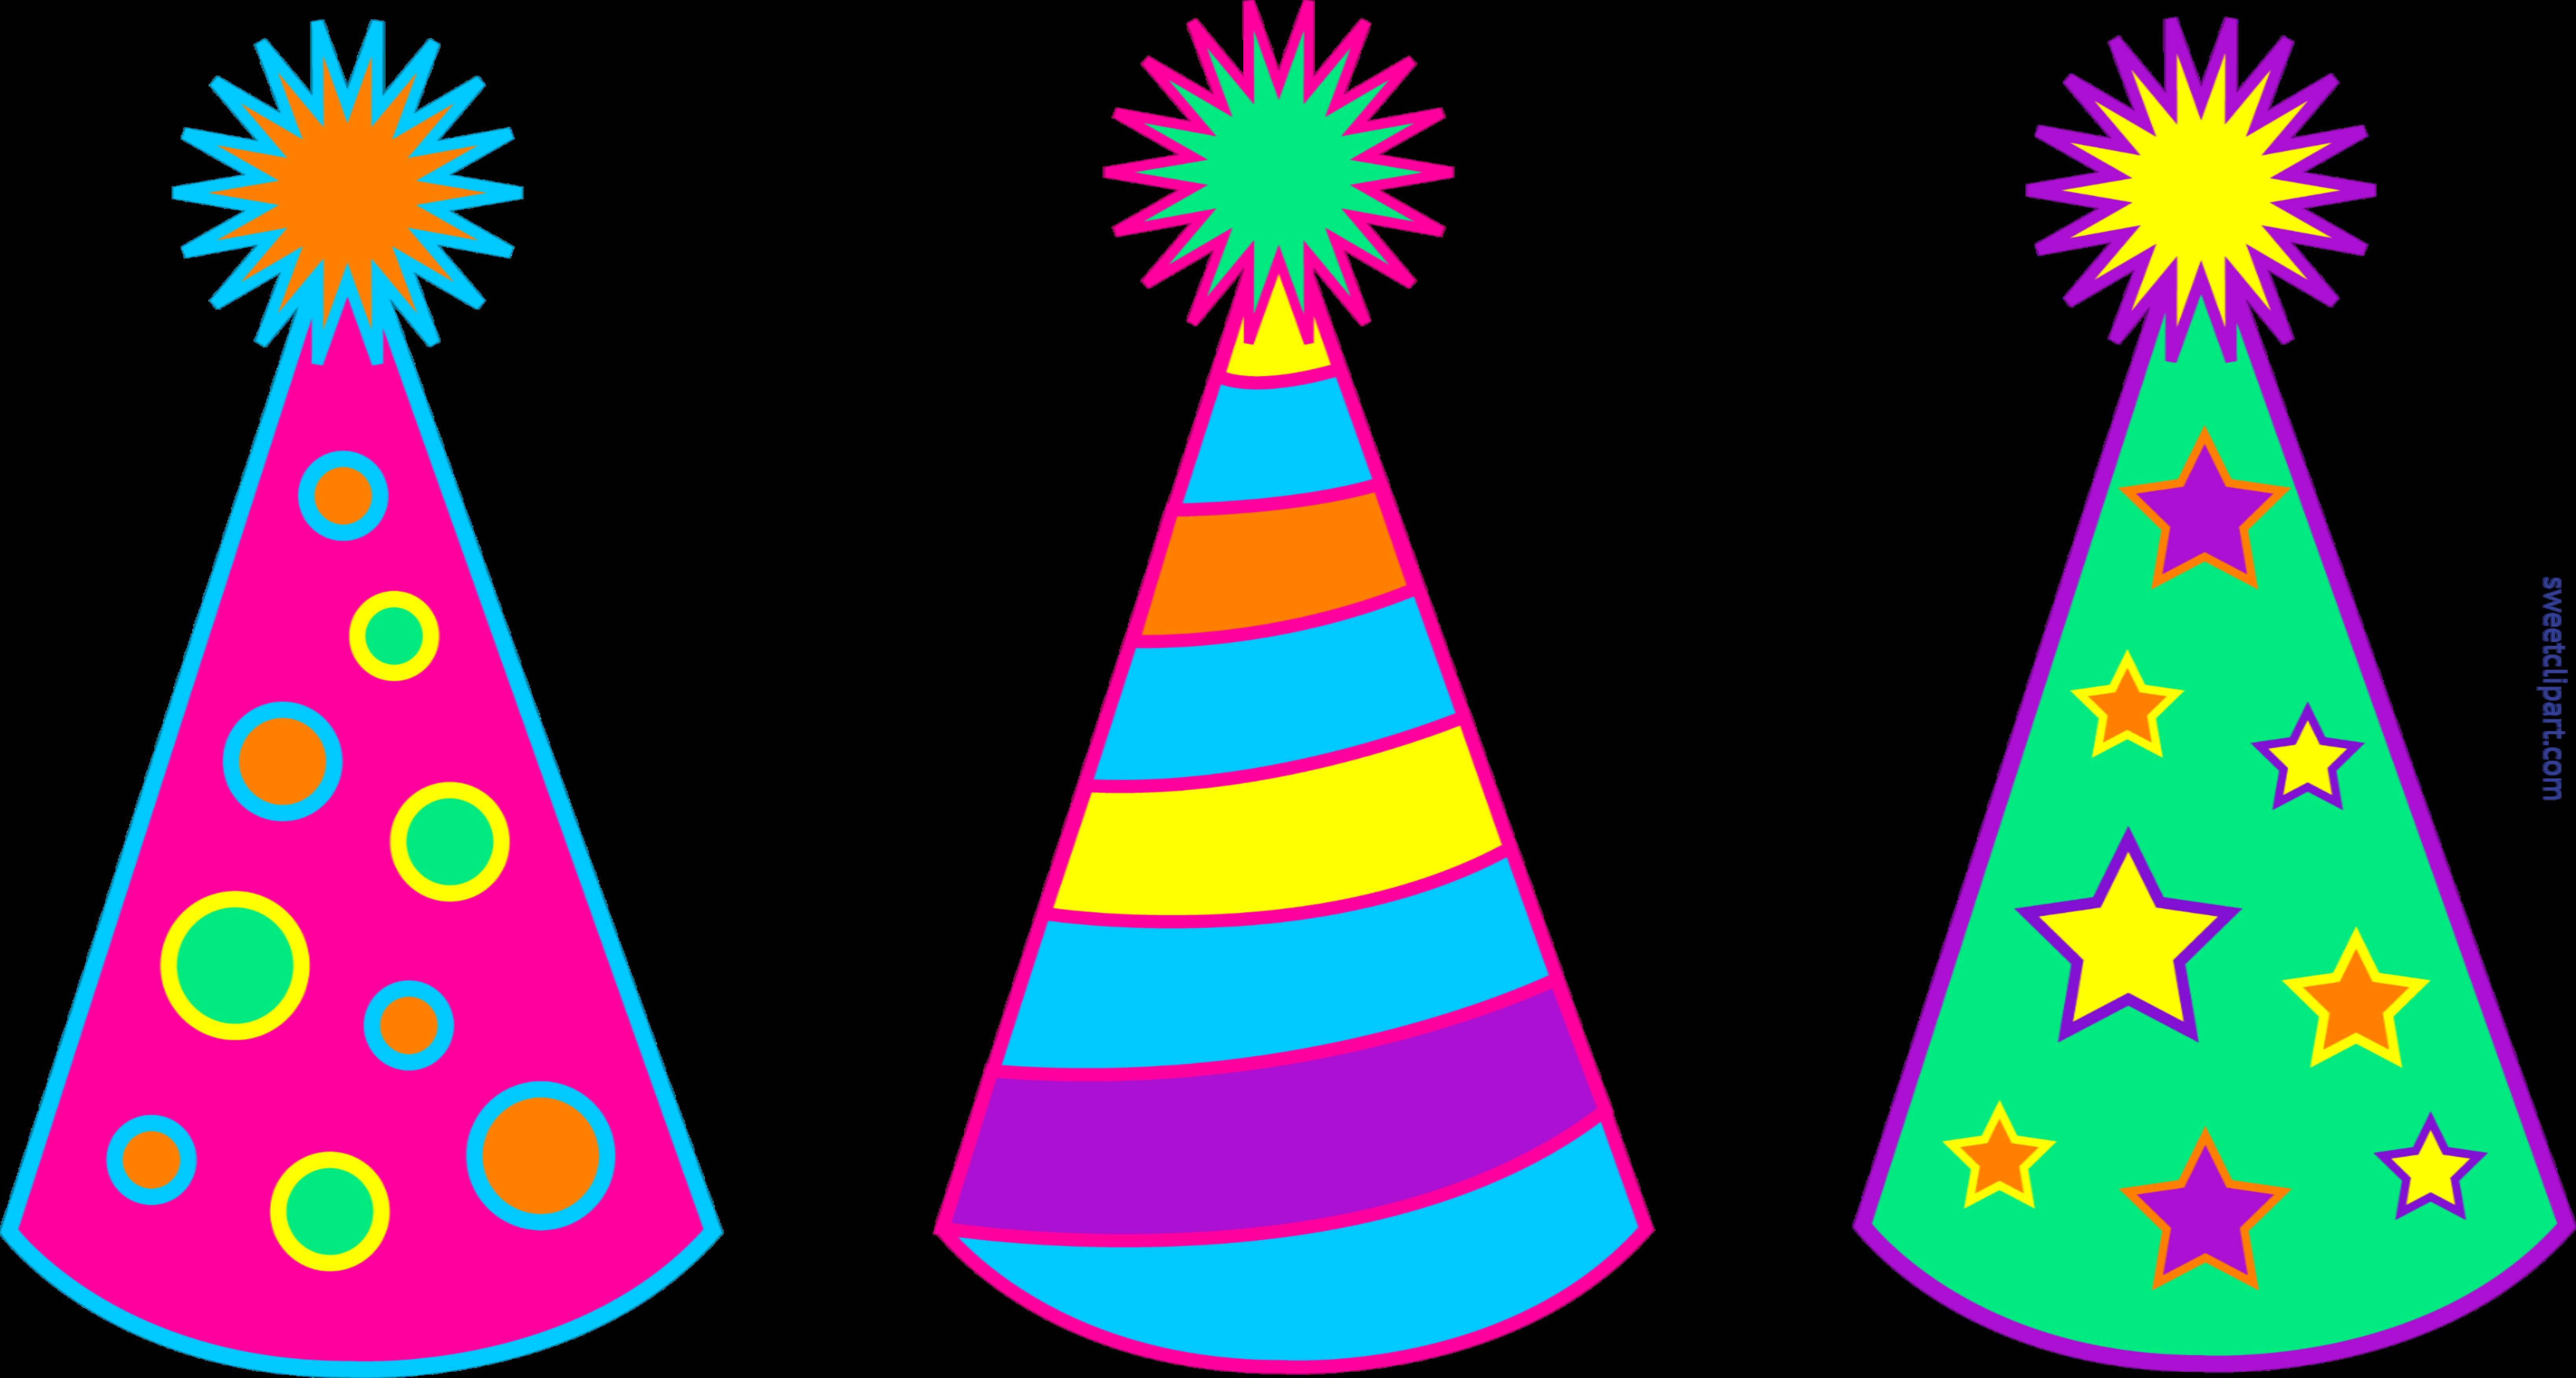 birthday party clip art pictures ; Birthday-Party-Hats-Set-1-Clip-Art